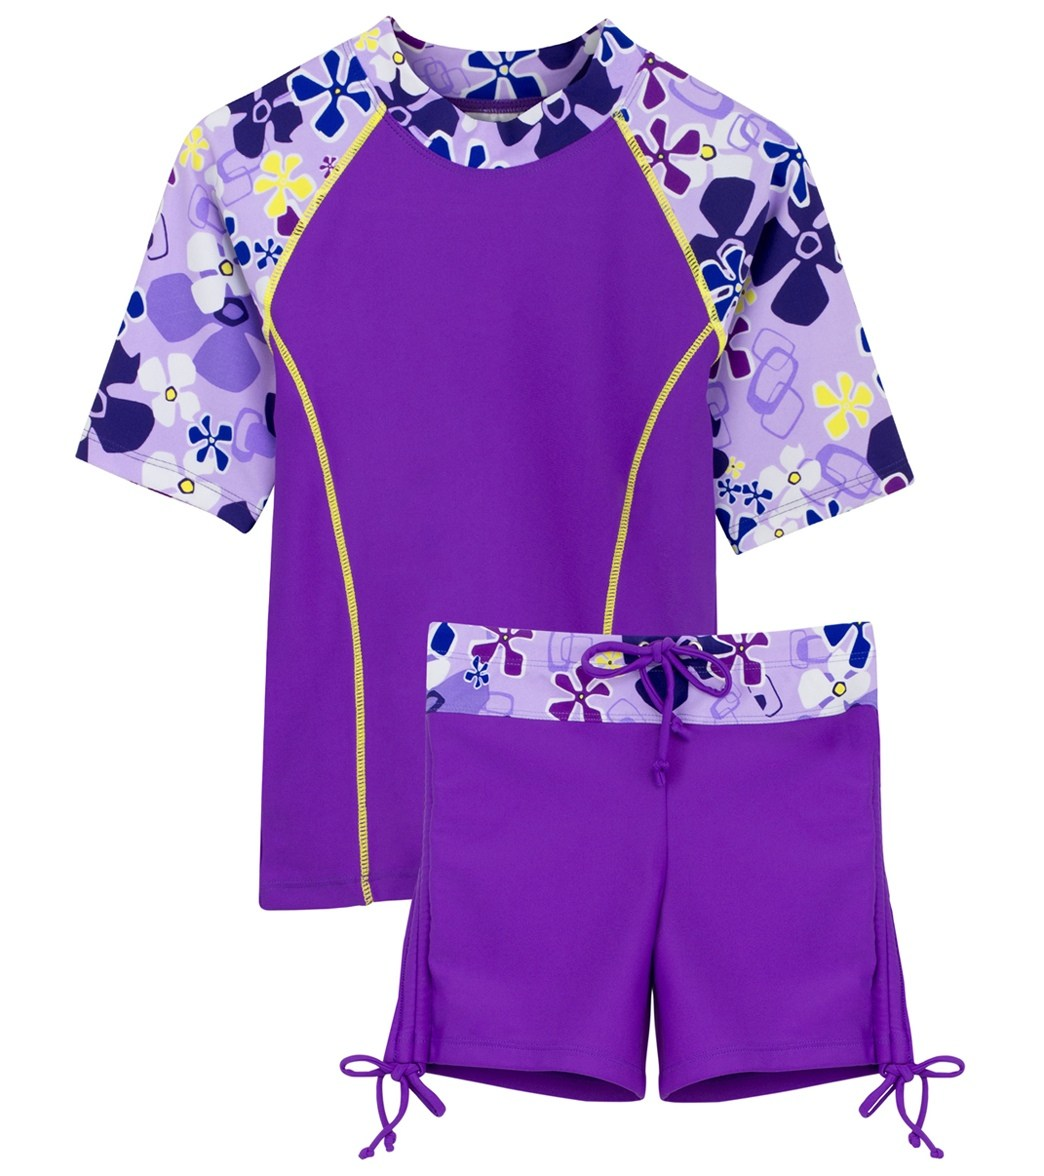 cde63fa90d Tuga Surfer Girl 2 Piece Rash Guard Set (4 yrs-14 yrs) at SwimOutlet.com